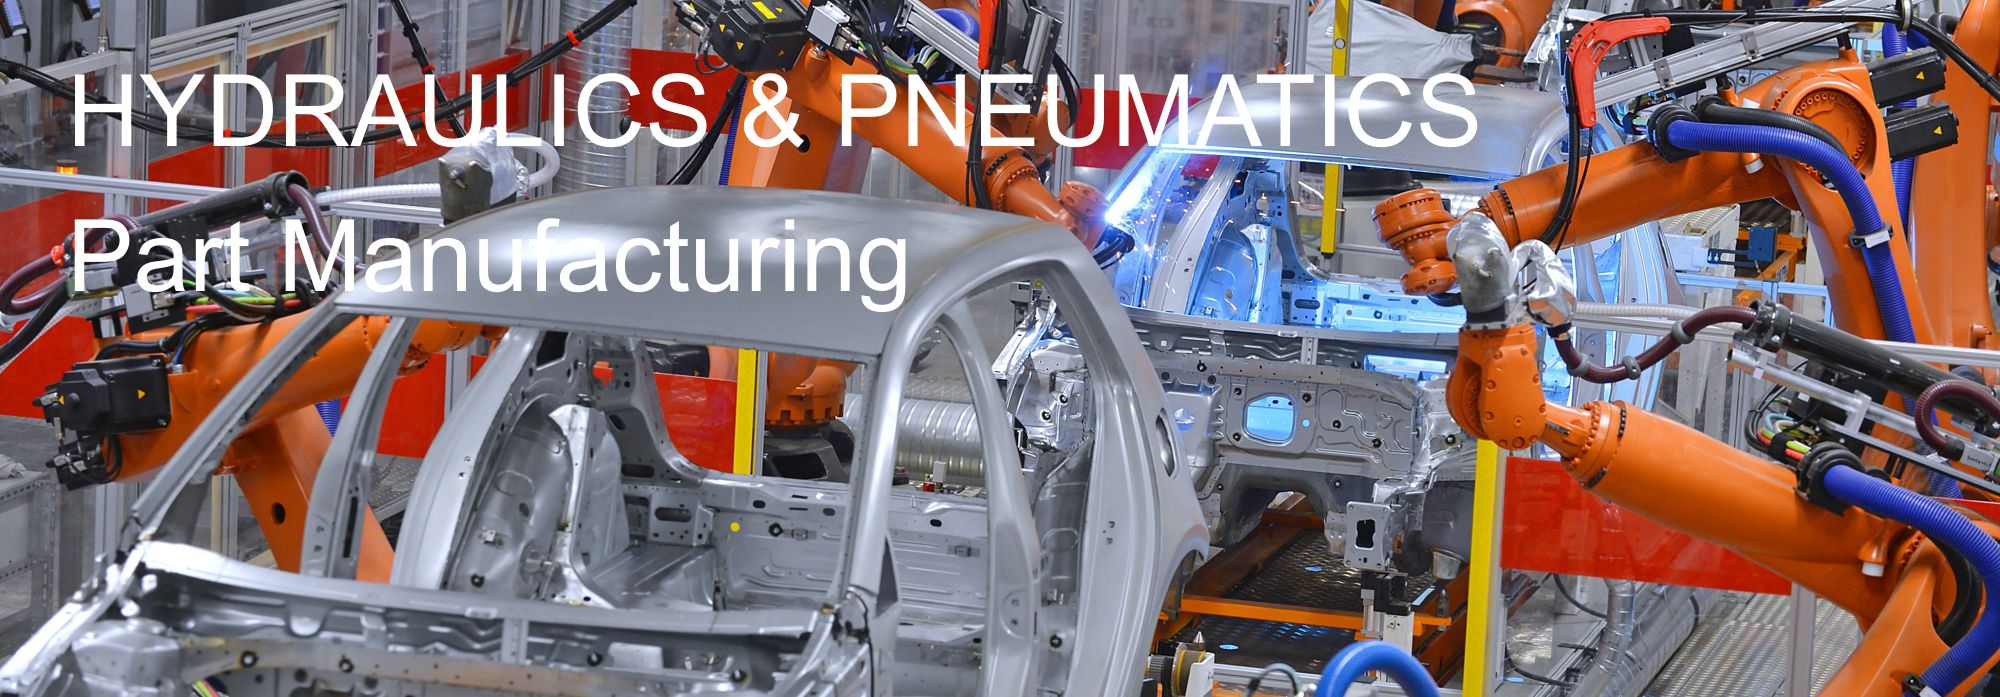 Hydraulics-Pneumatics-part-manufacturing-valley-machine-shop